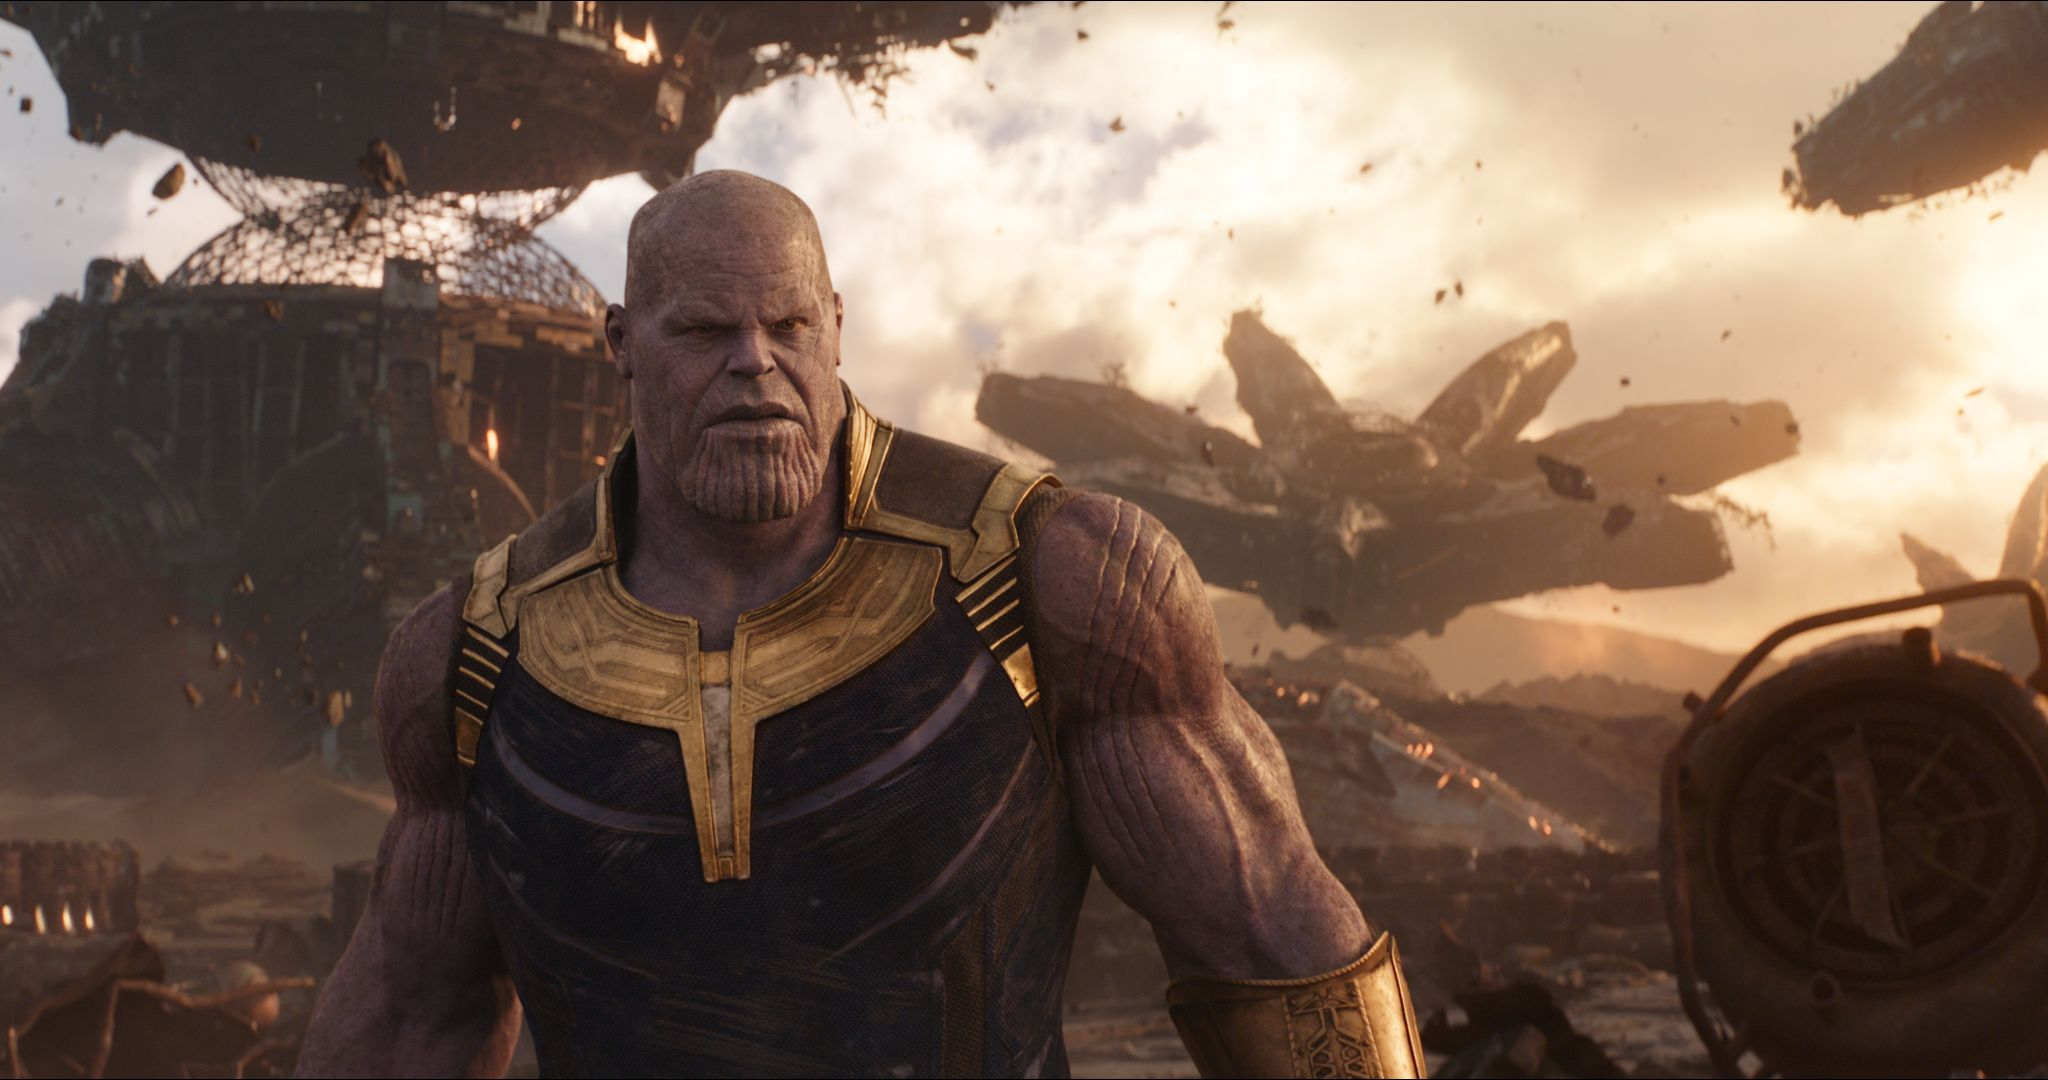 Was Thanos' Doomed Home World From AvengersEver Really Habitable? Earther Investigates